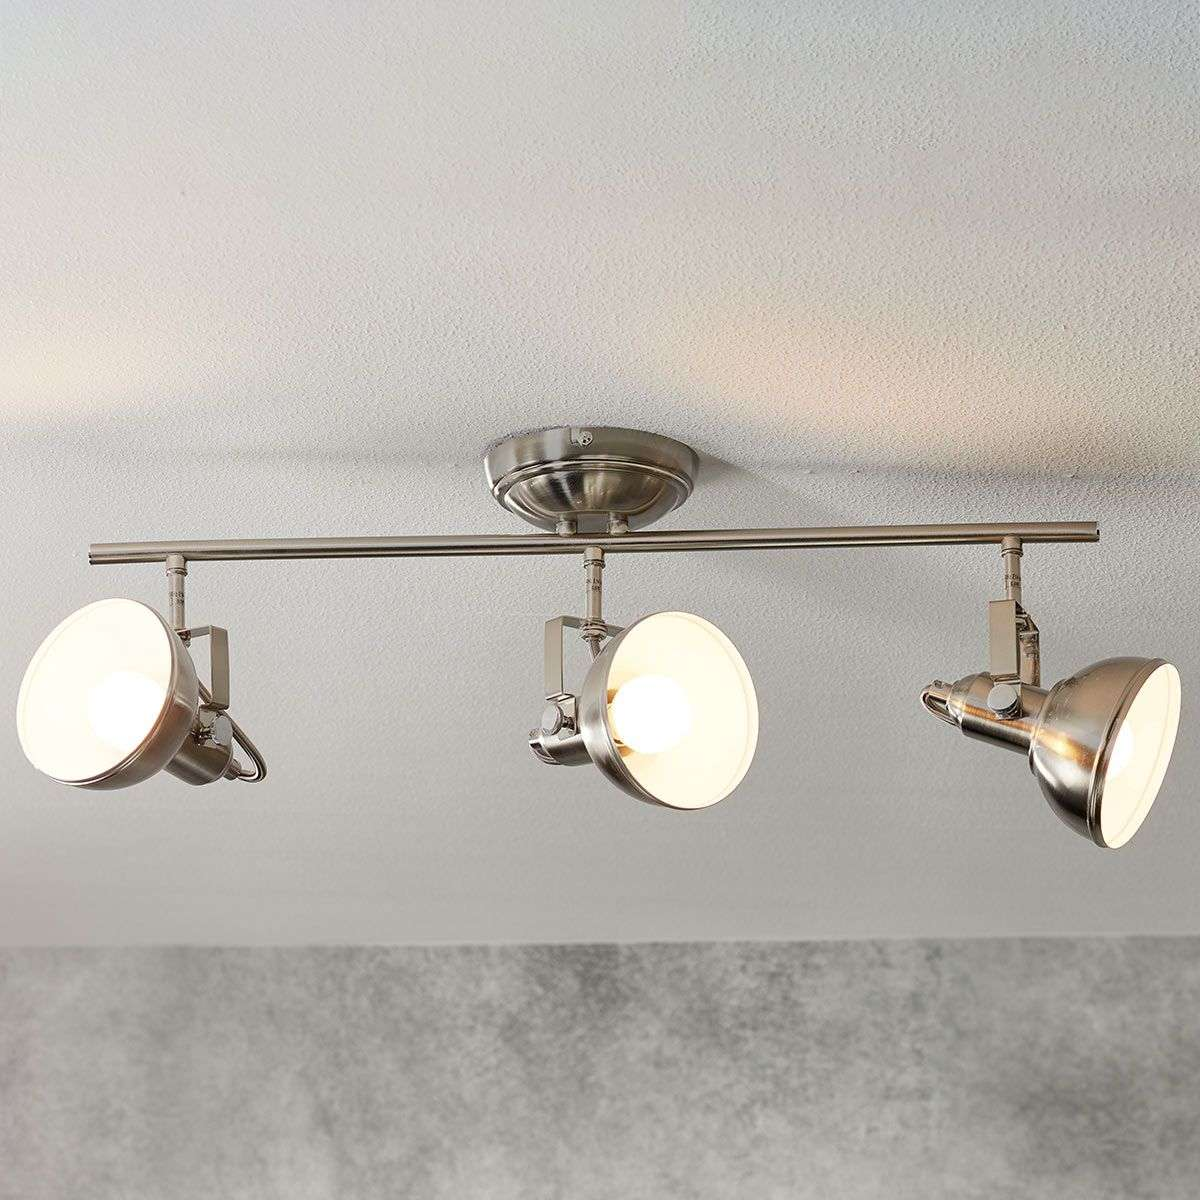 3 Bulb Ceiling Light: 3-Light Gina Ceiling Light, Industrial Look